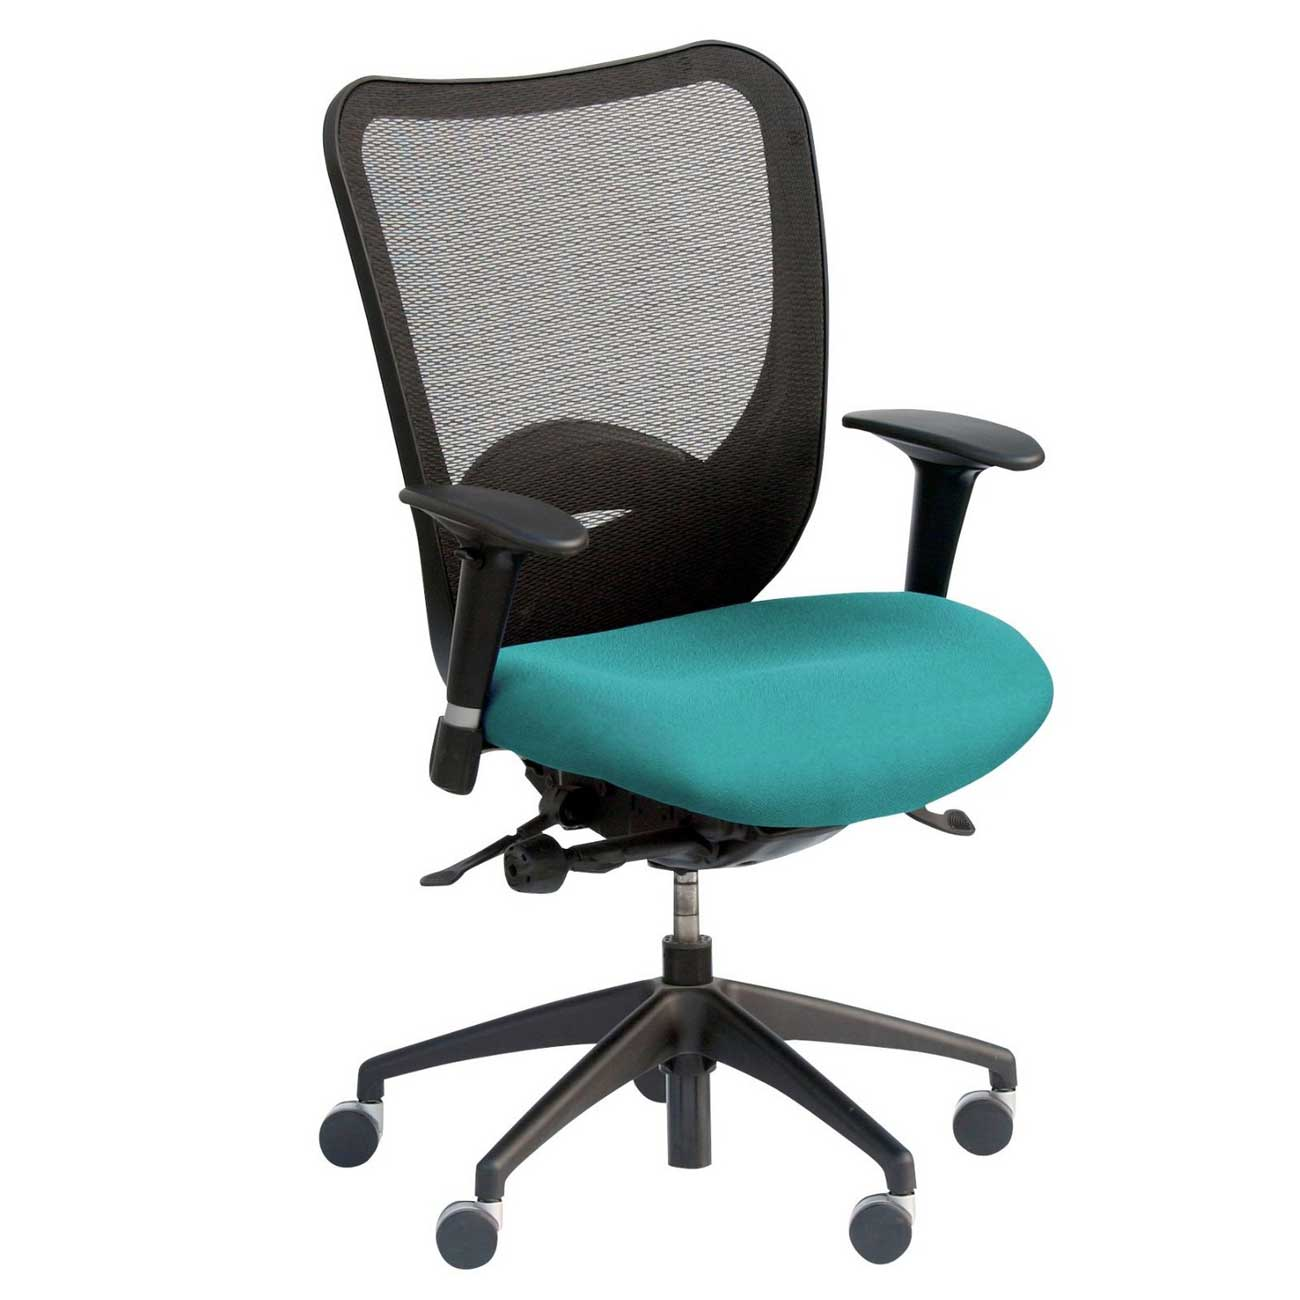 stylish desk chair